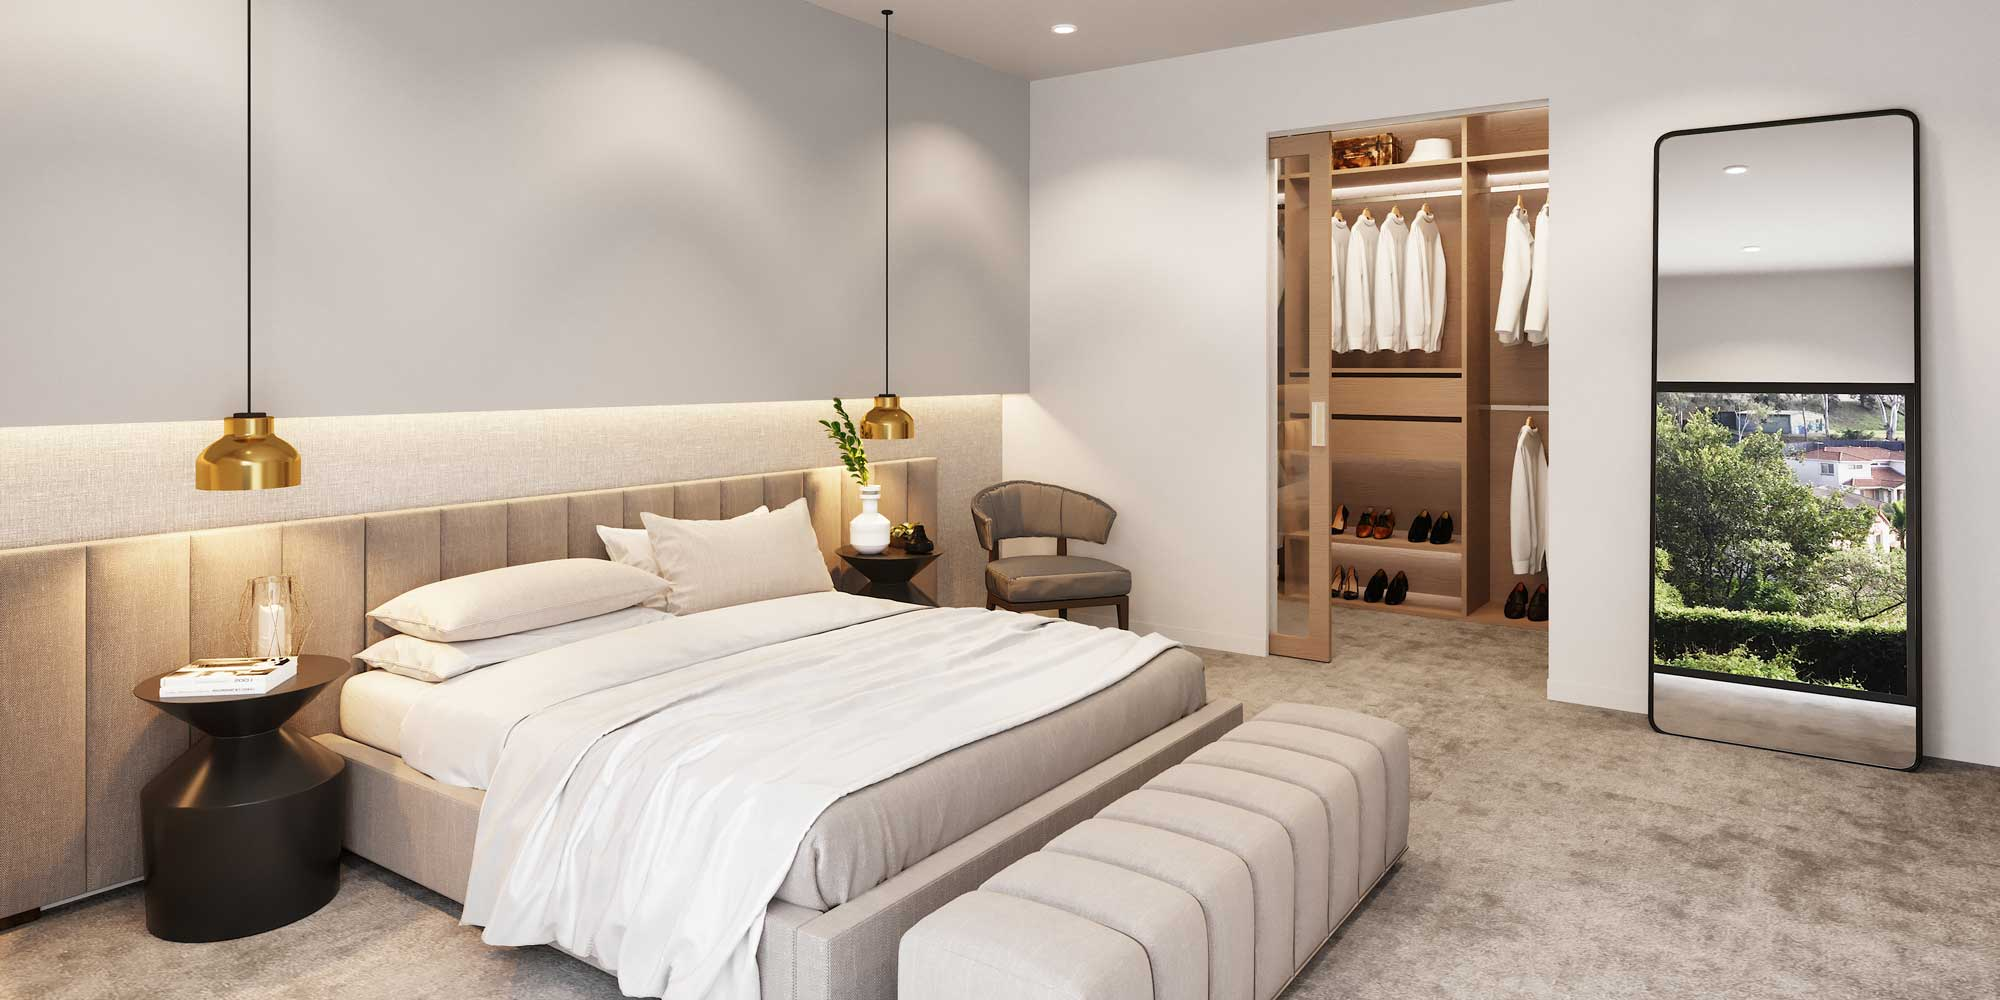 Bedroom at The Cascades | House and Land for Sale in Kenmore, Brisbane | Artist's Impression